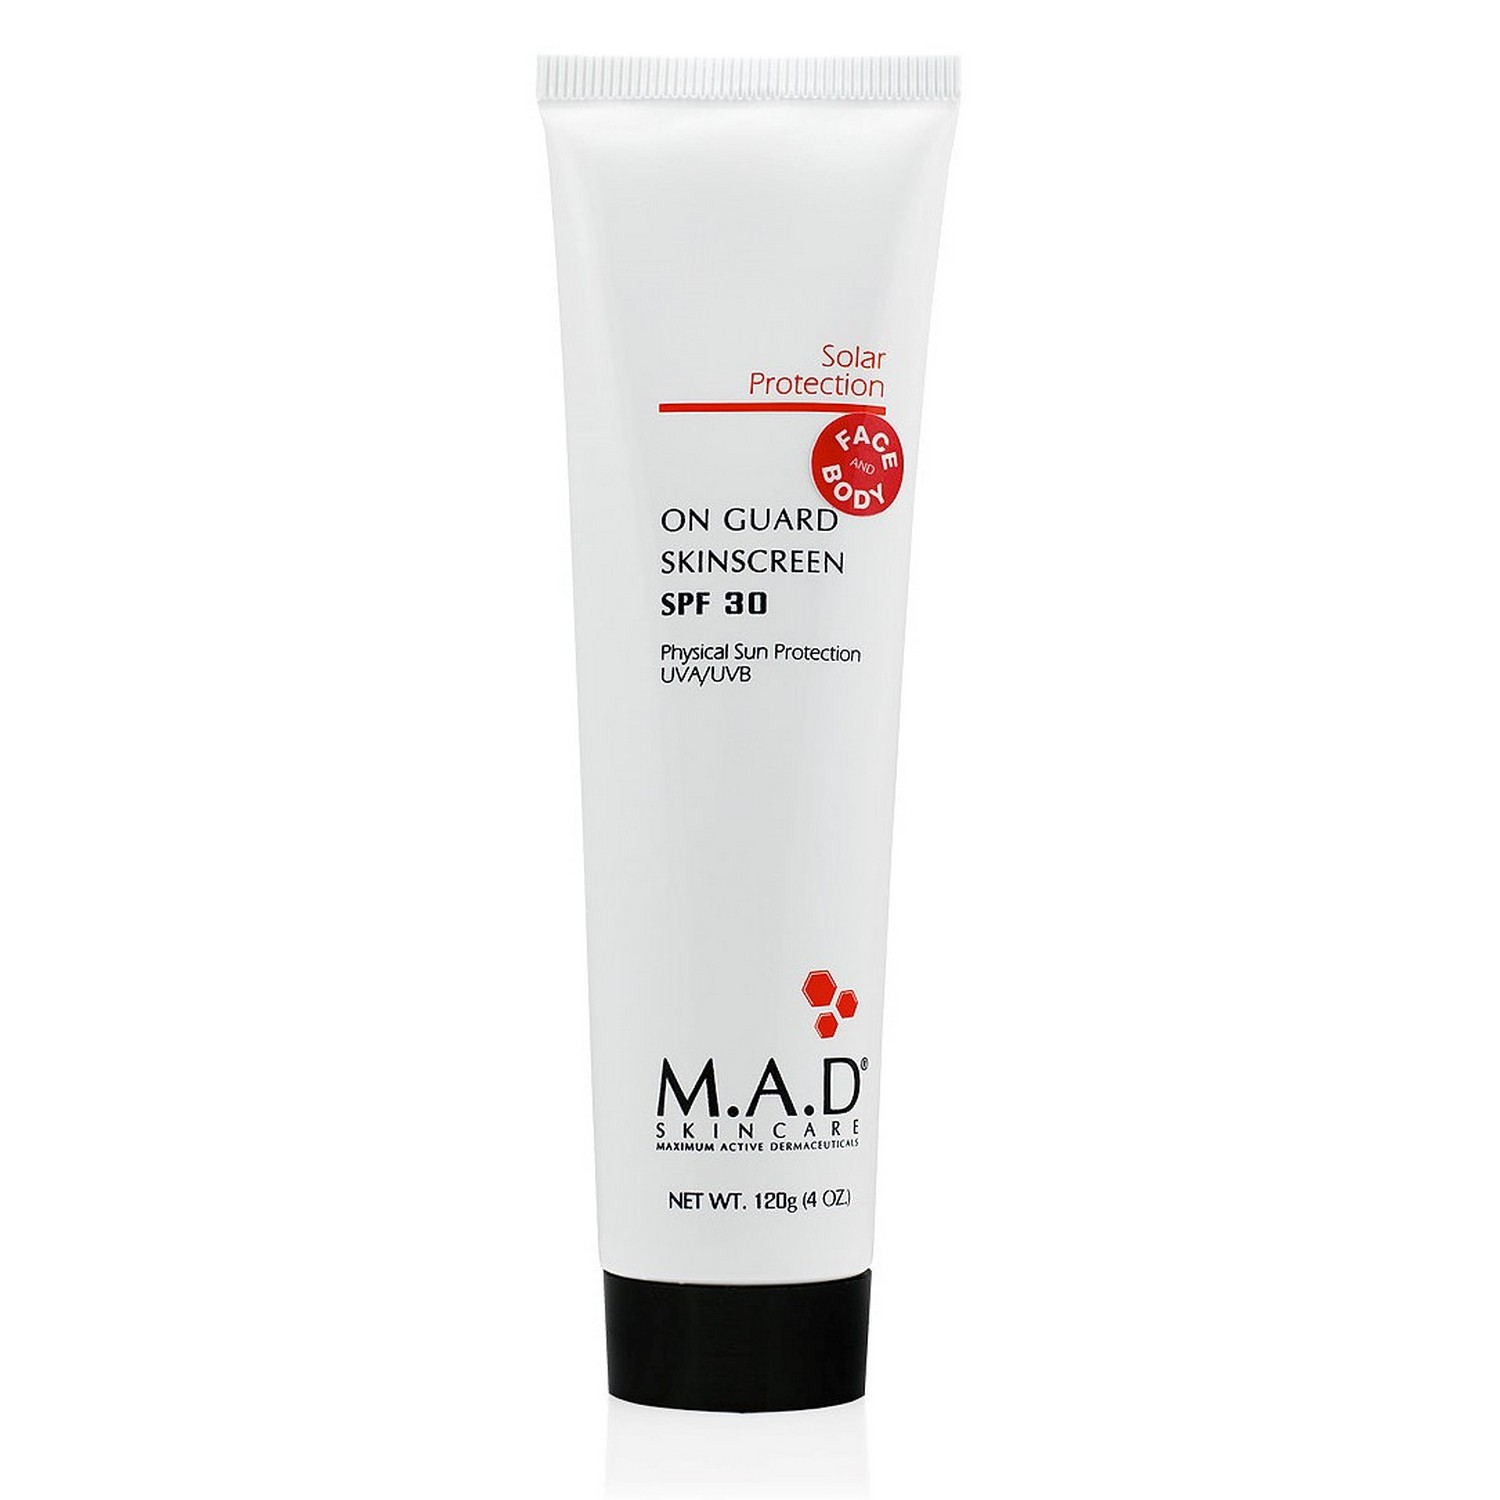 M.A.D SKINCARE ON GUARD SKINSCREEN SPF 30 (120 g / 4.0 oz)